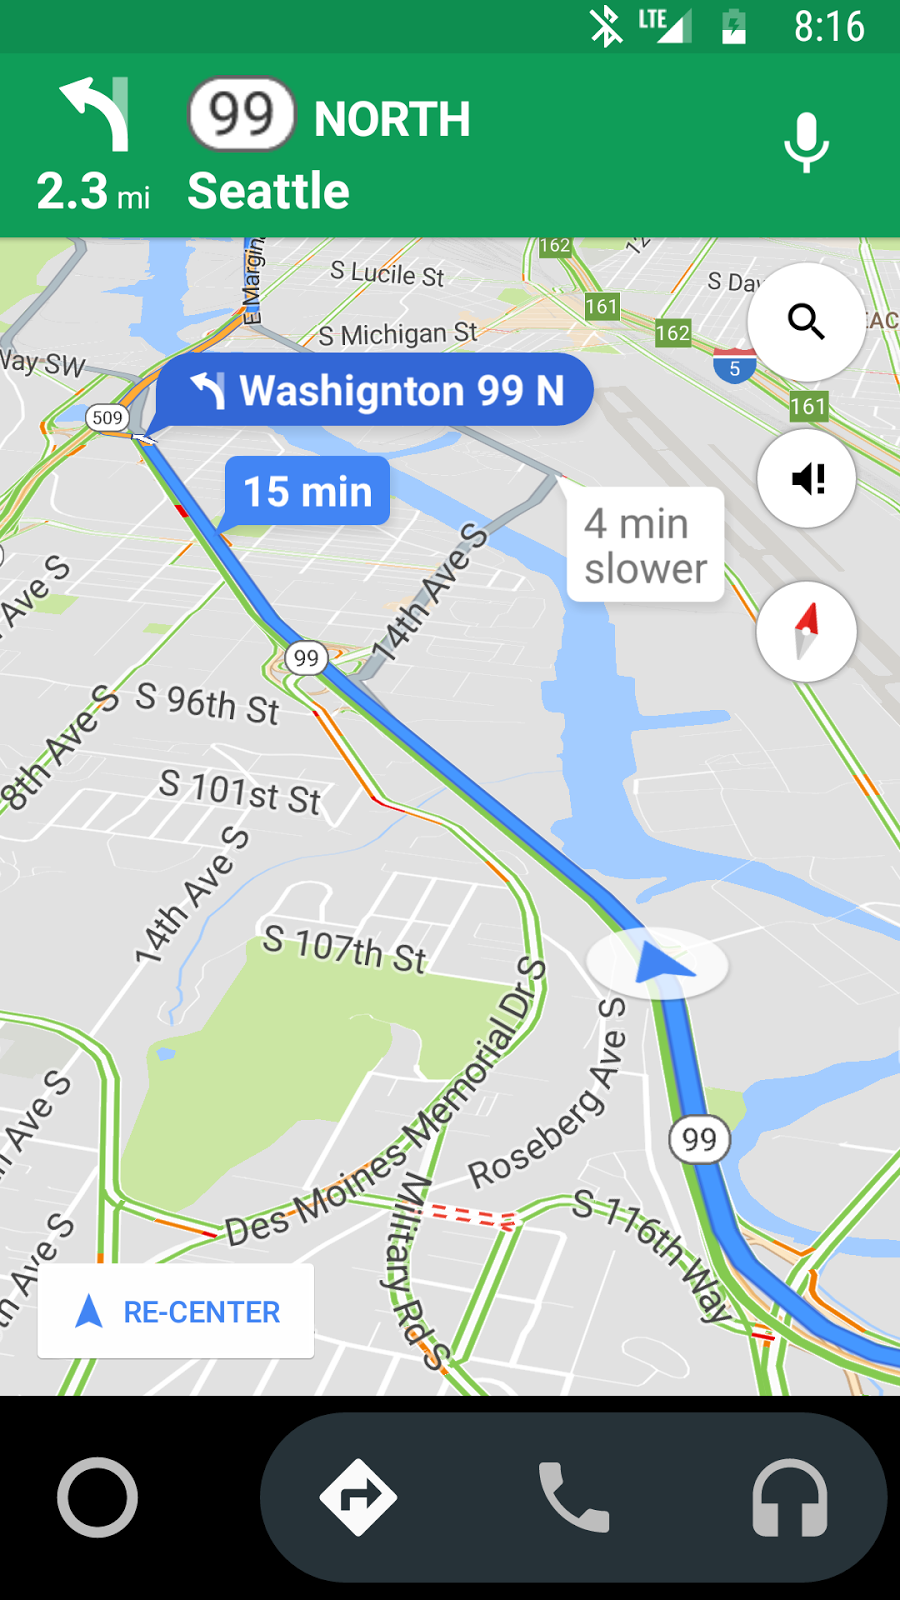 Typo in directions. - Aide Google Maps Google Gl Maps on microsoft maps, googlr maps, topographic maps, gogole maps, aerial maps, gppgle maps, msn maps, ipad maps, googie maps, road map usa states maps, bing maps, amazon fire phone maps, stanford university maps, aeronautical maps, iphone maps, android maps, waze maps, goolge maps, search maps, online maps,